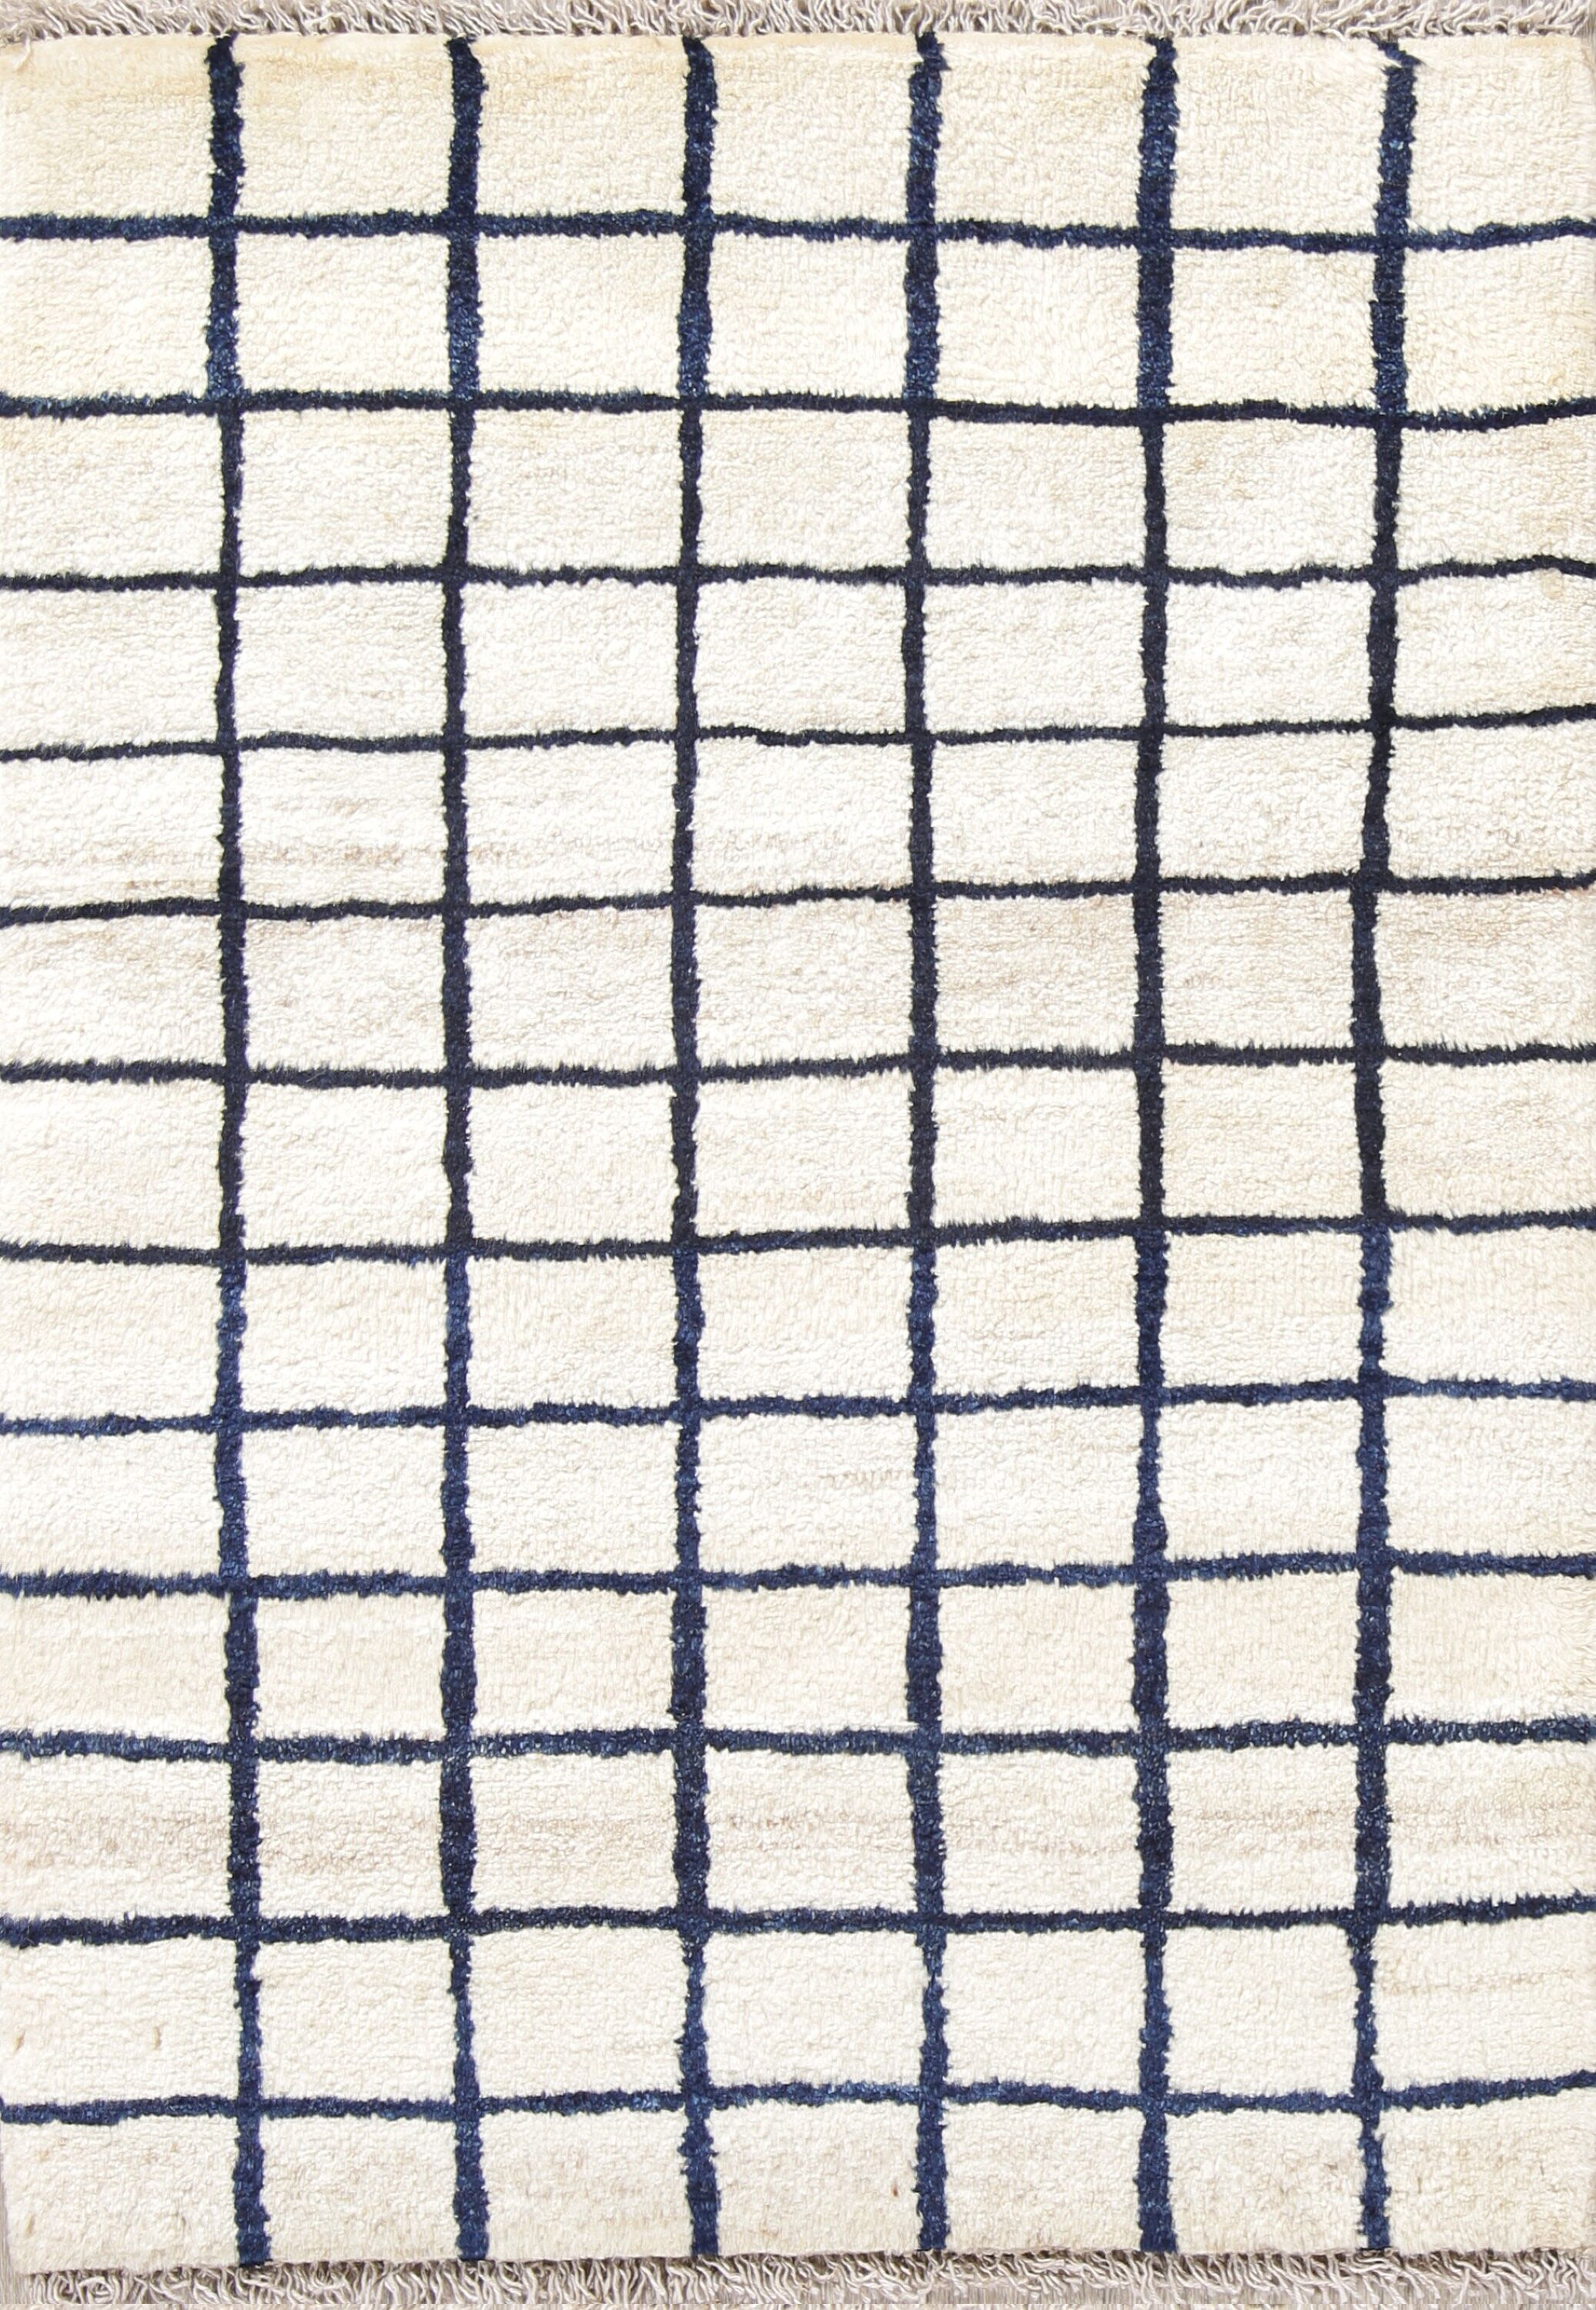 One-of-a-Kind Checked Modern Gabbeh Shiraz Persian Hand-Knotted 2'9